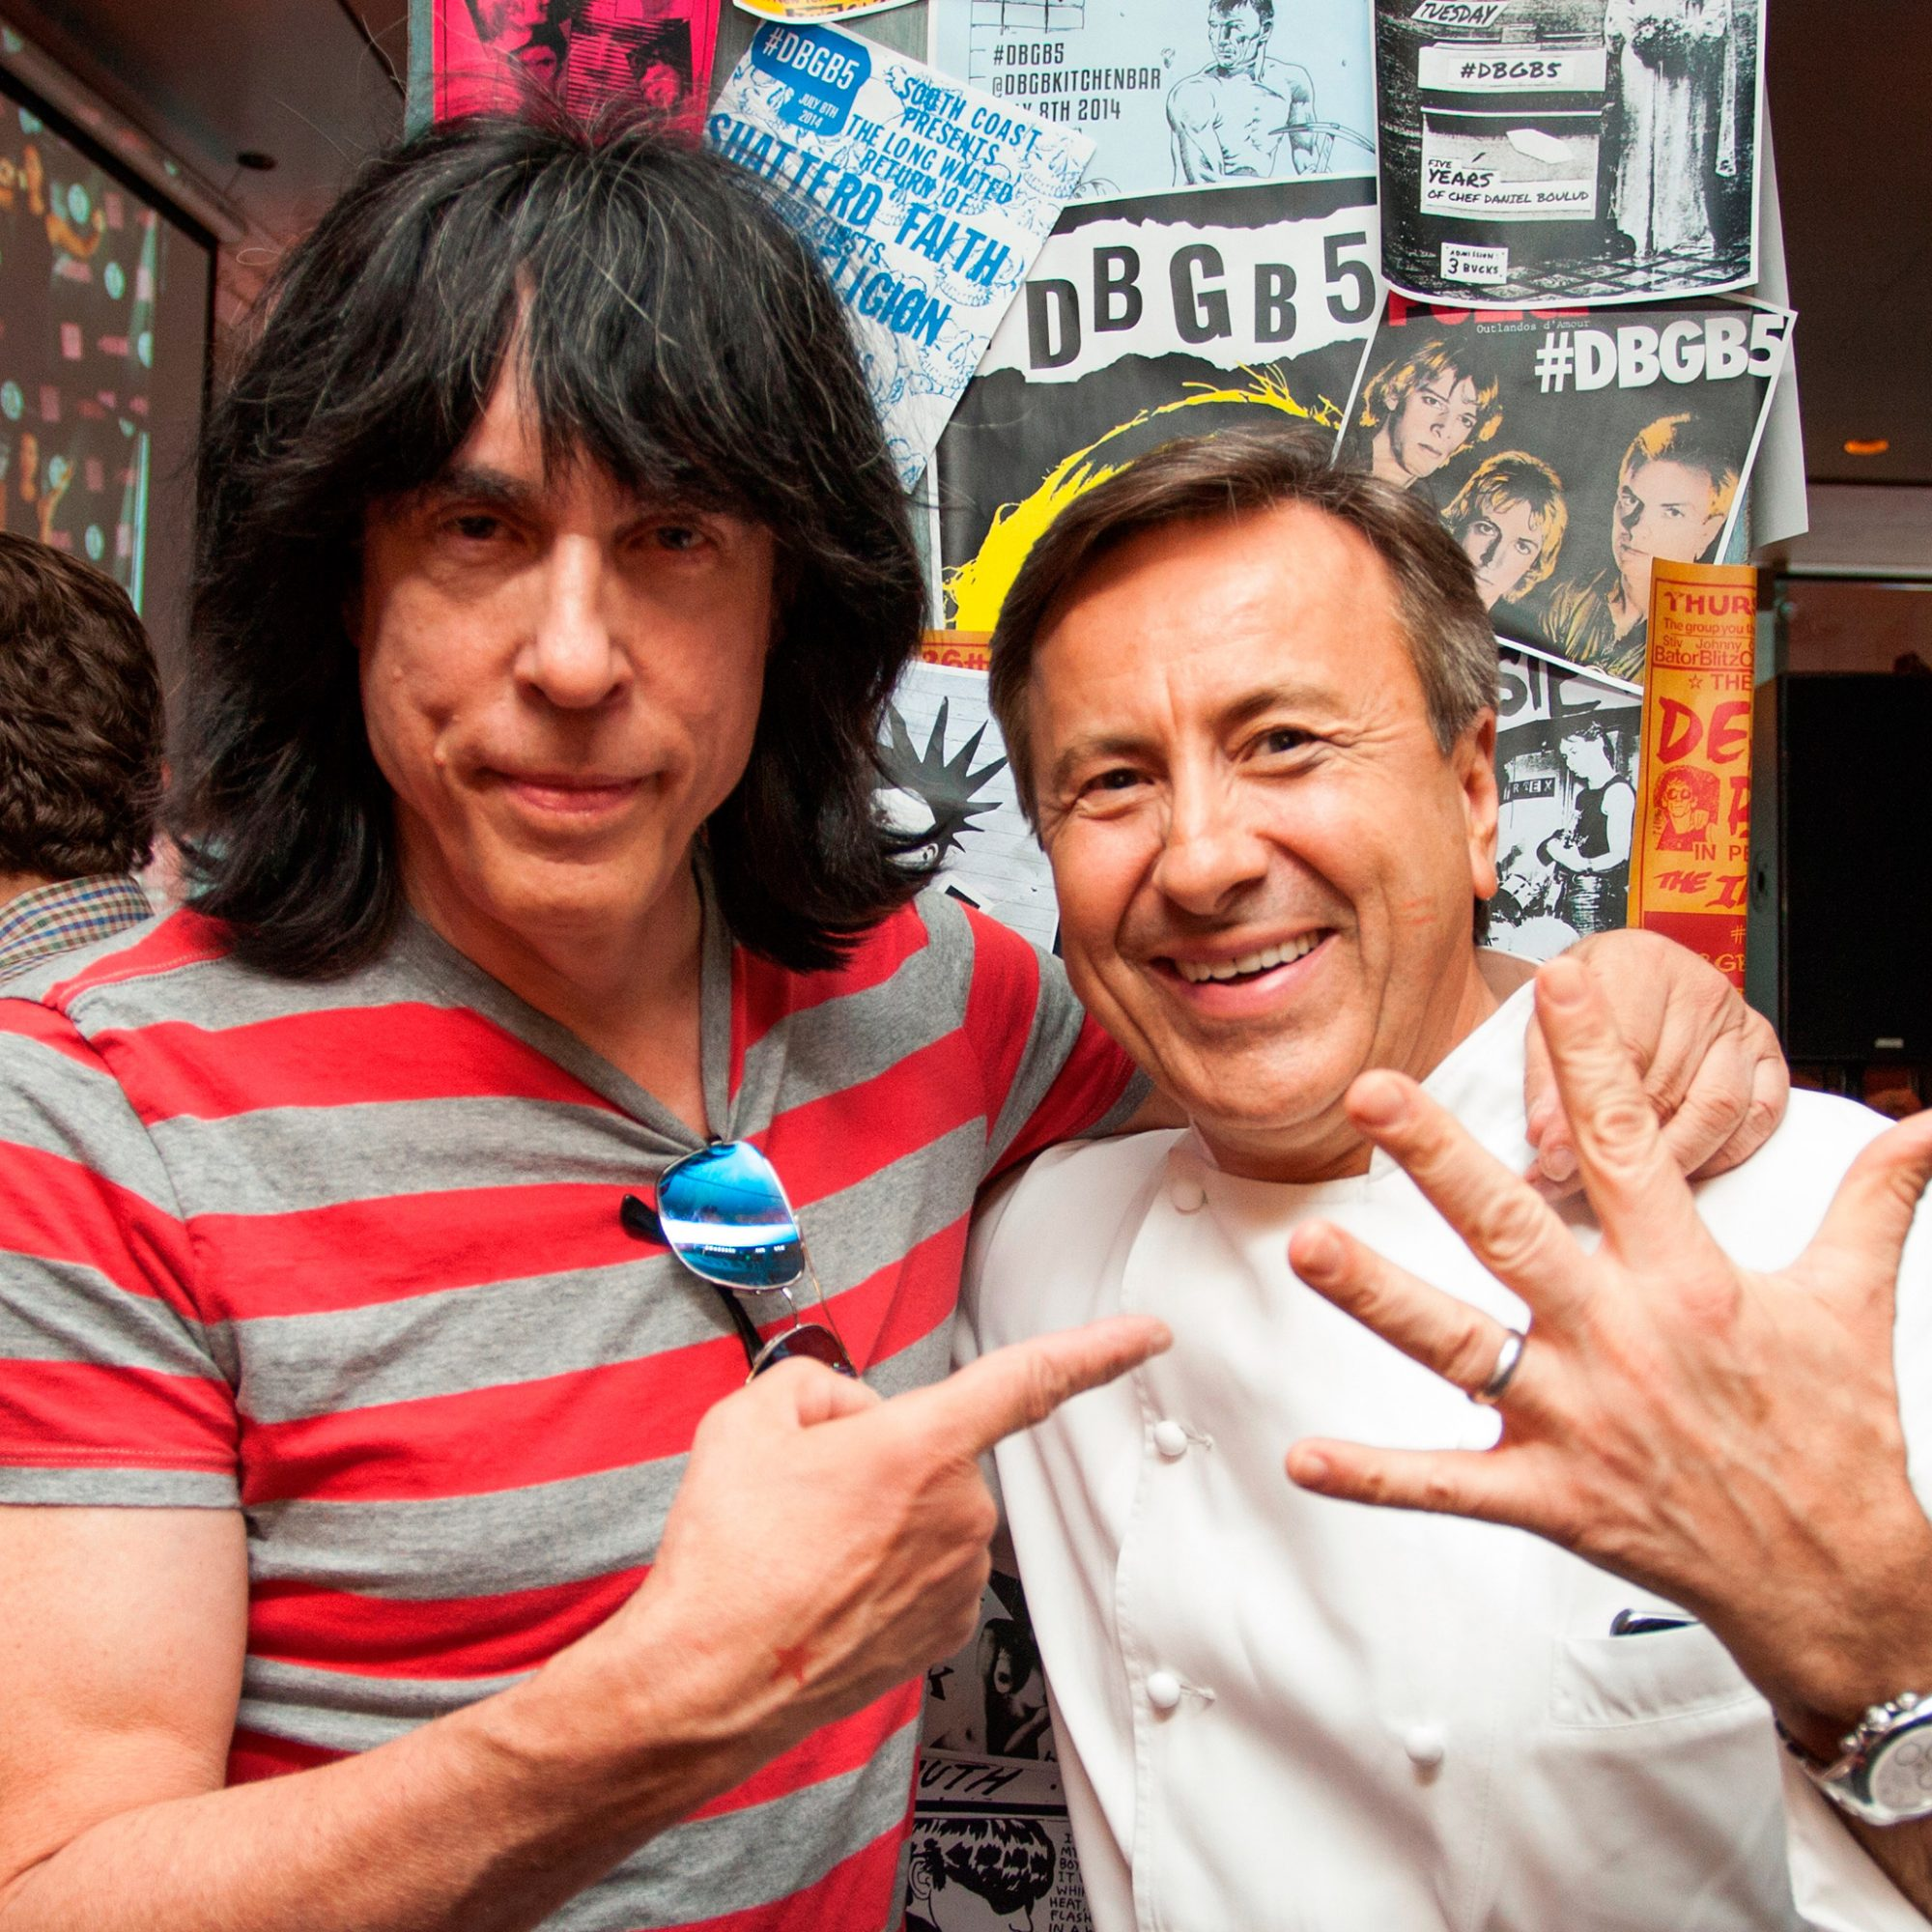 Punk Legend Marky Ramone's Classic Summer Playlist with Daniel Boulud